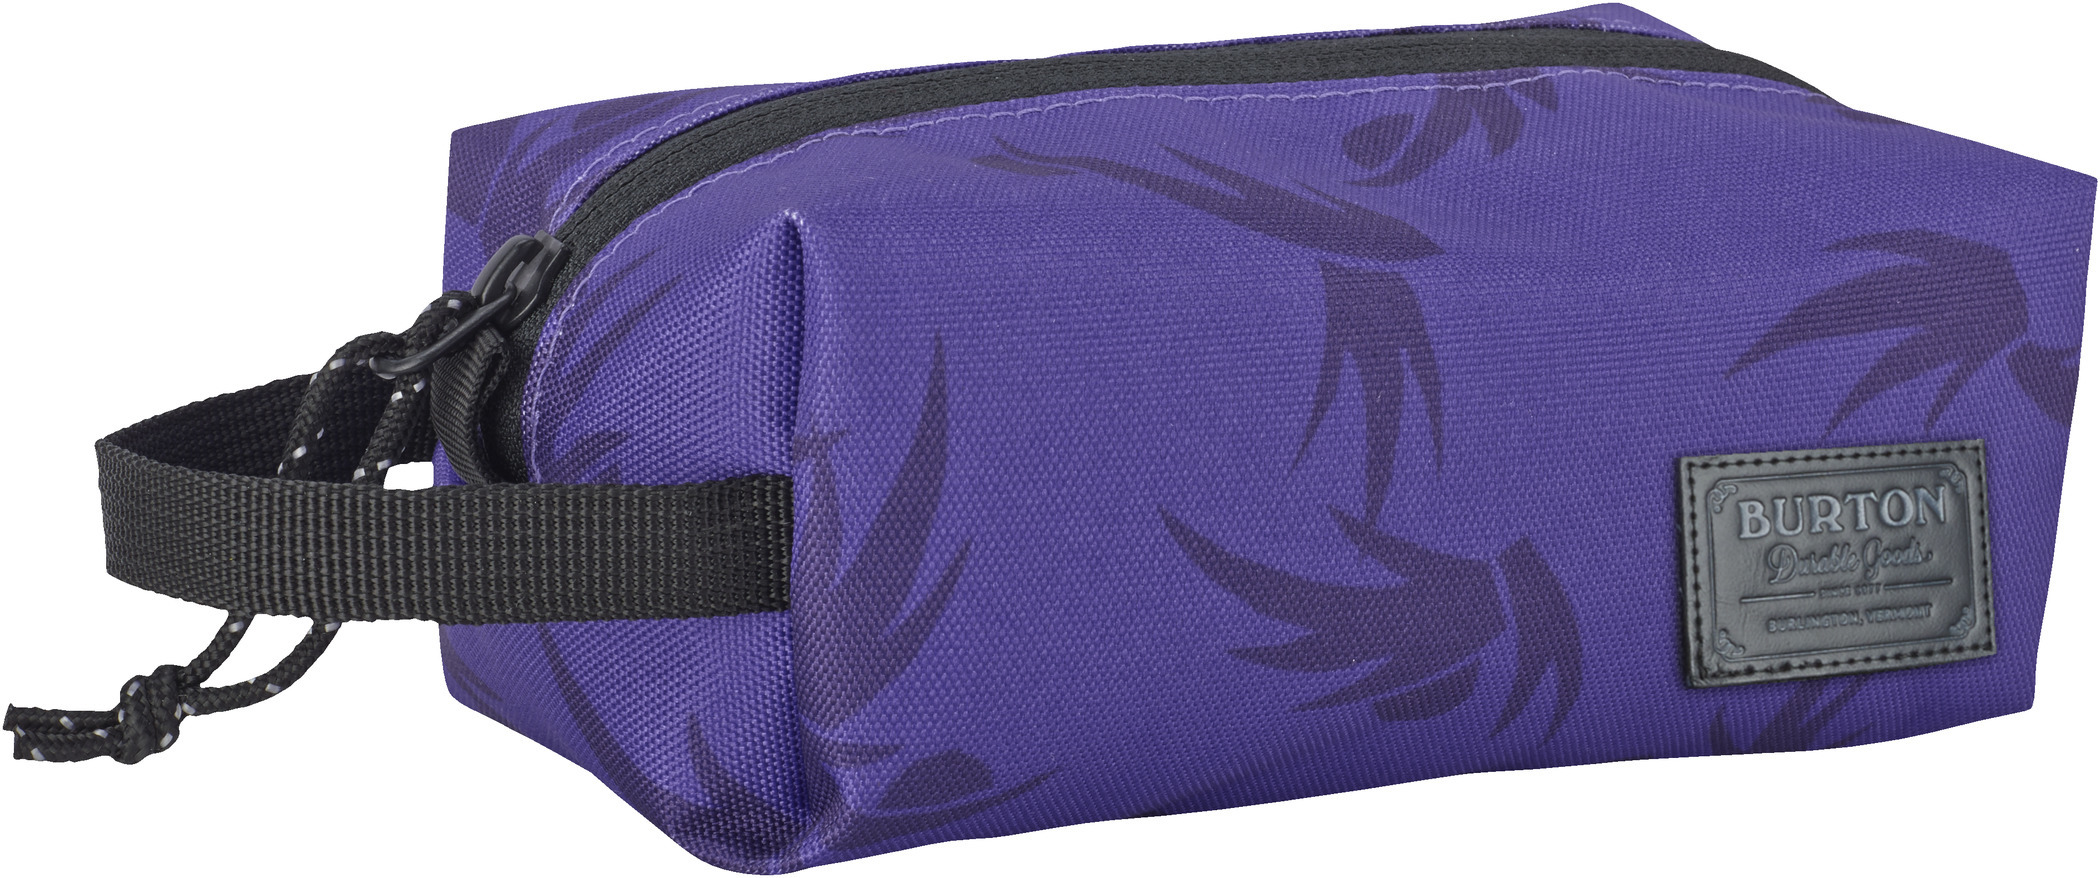 piórnik BURTON ACCESSORY CASE GRAPE MODERN FLORAL